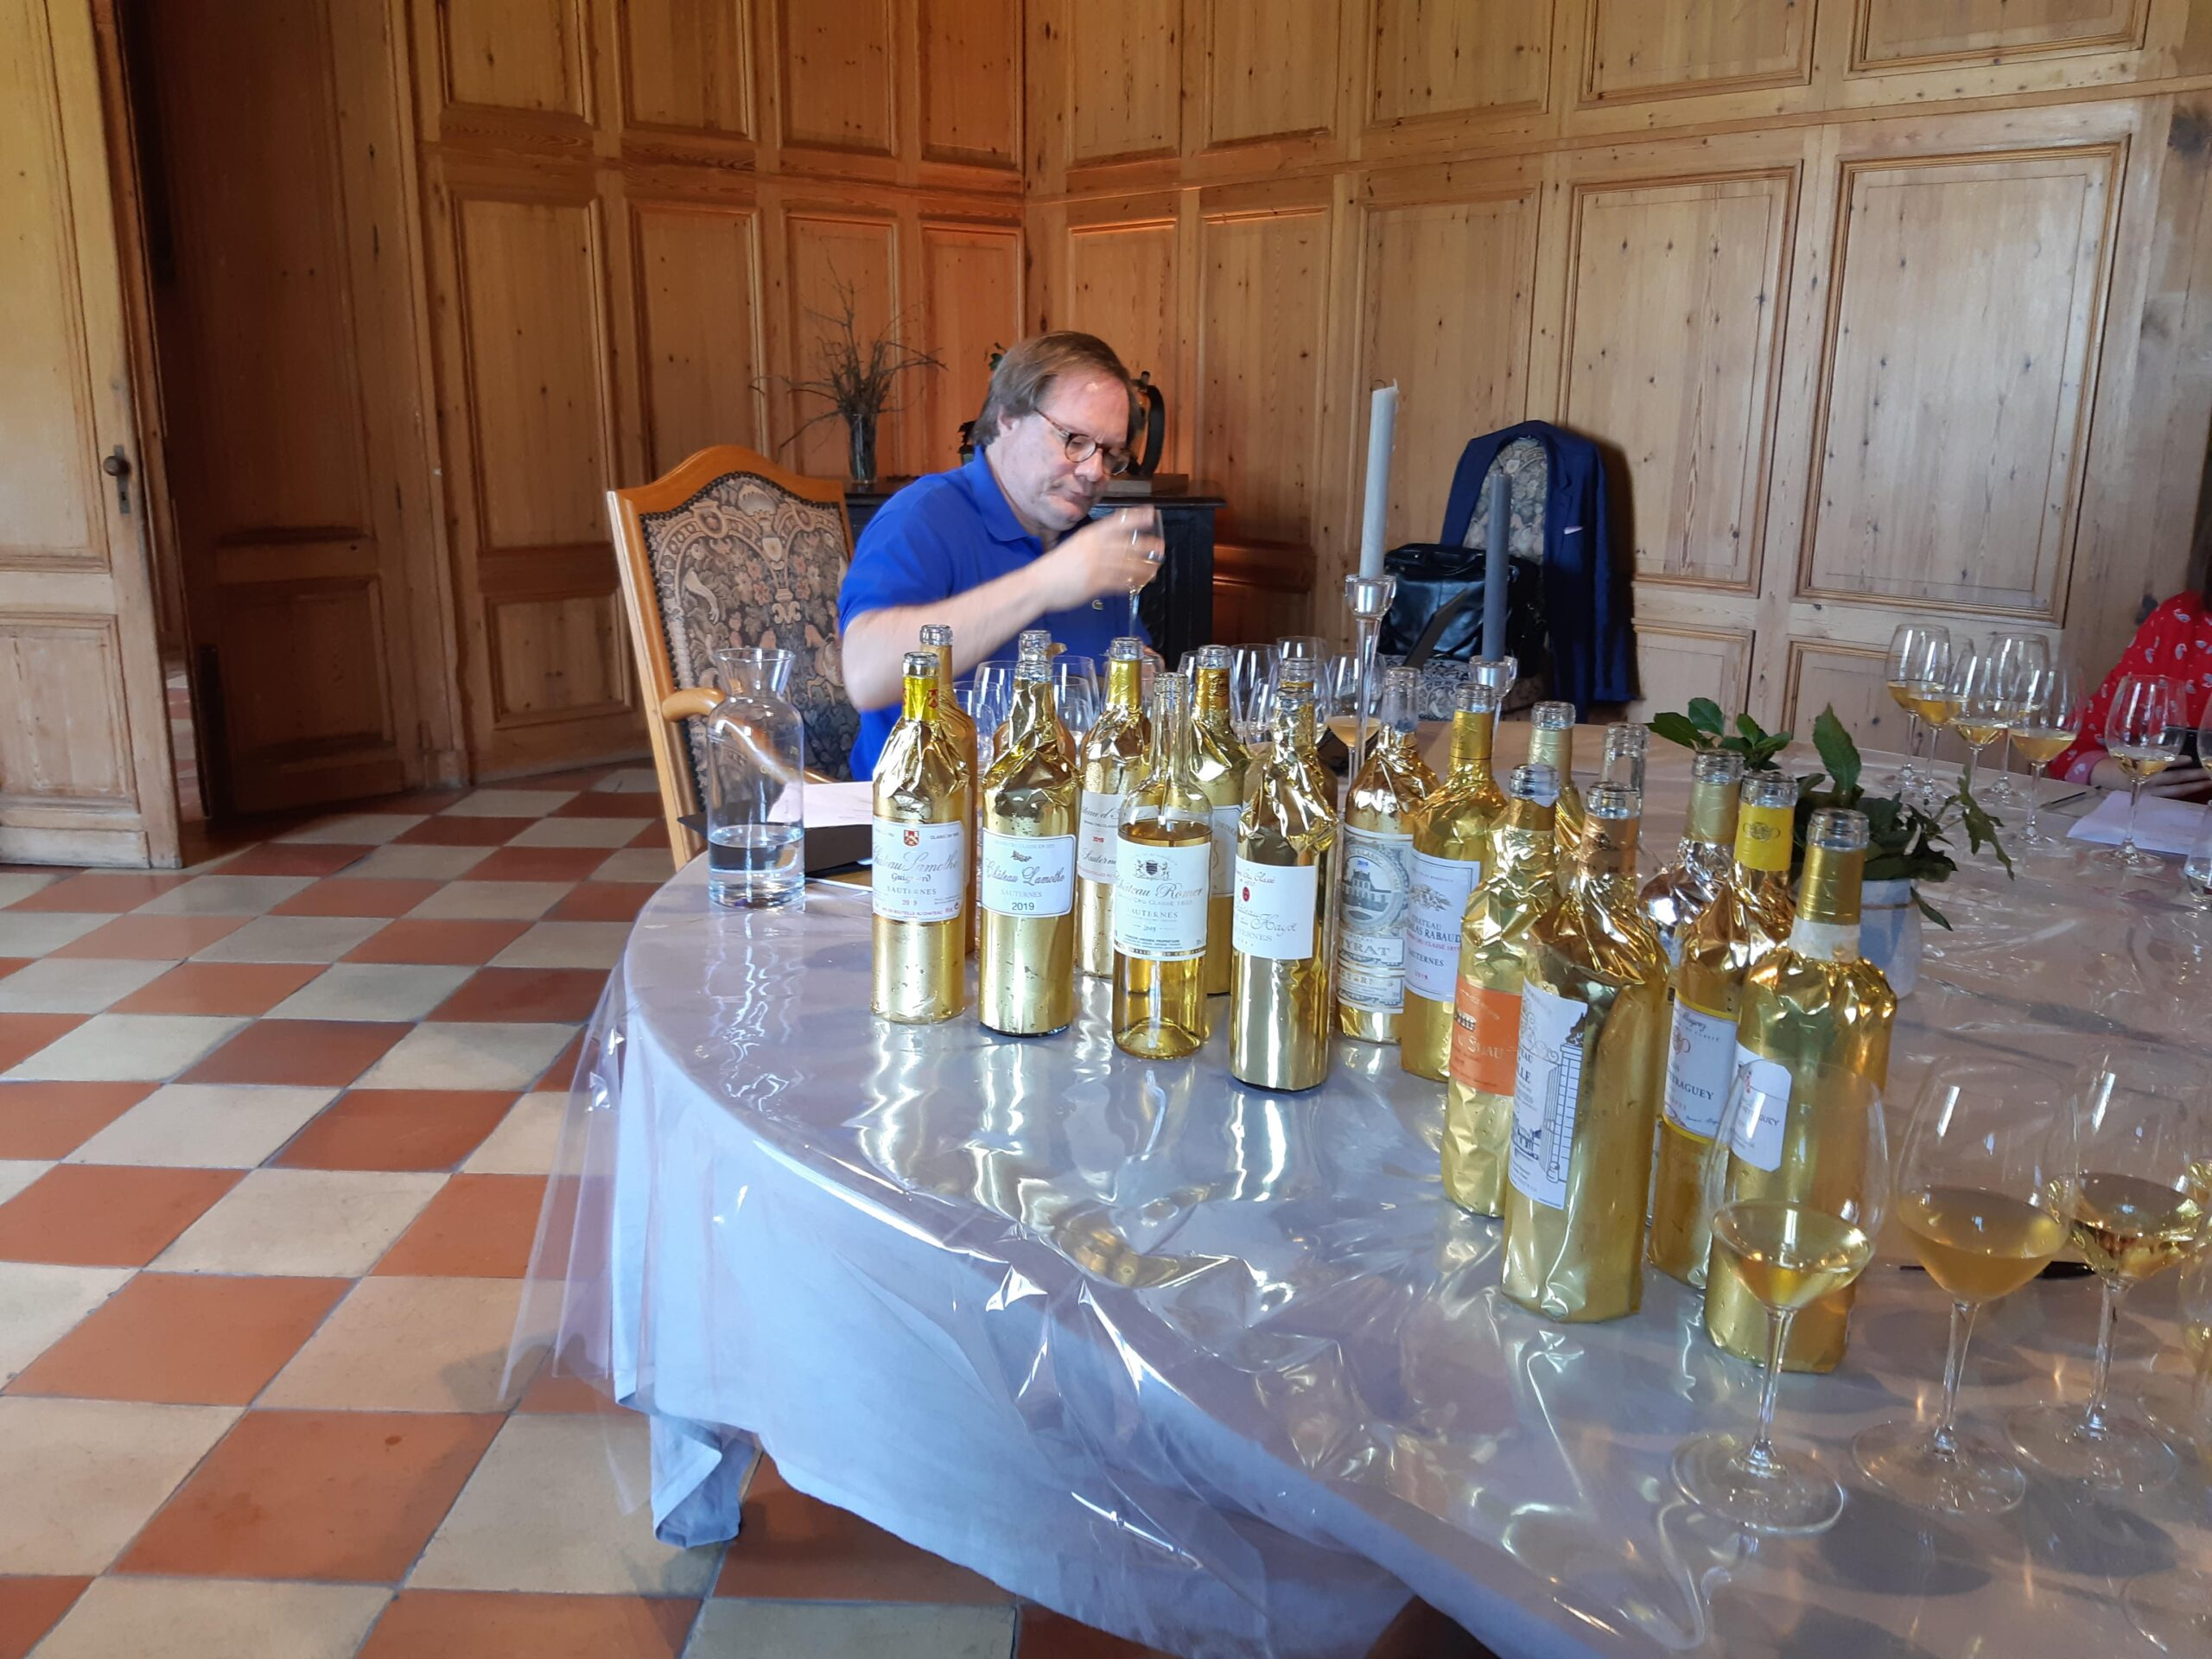 A-long-day-of-tasting-the-ebst-in-Sauternes-2019-min-scaled-1-1-1-1